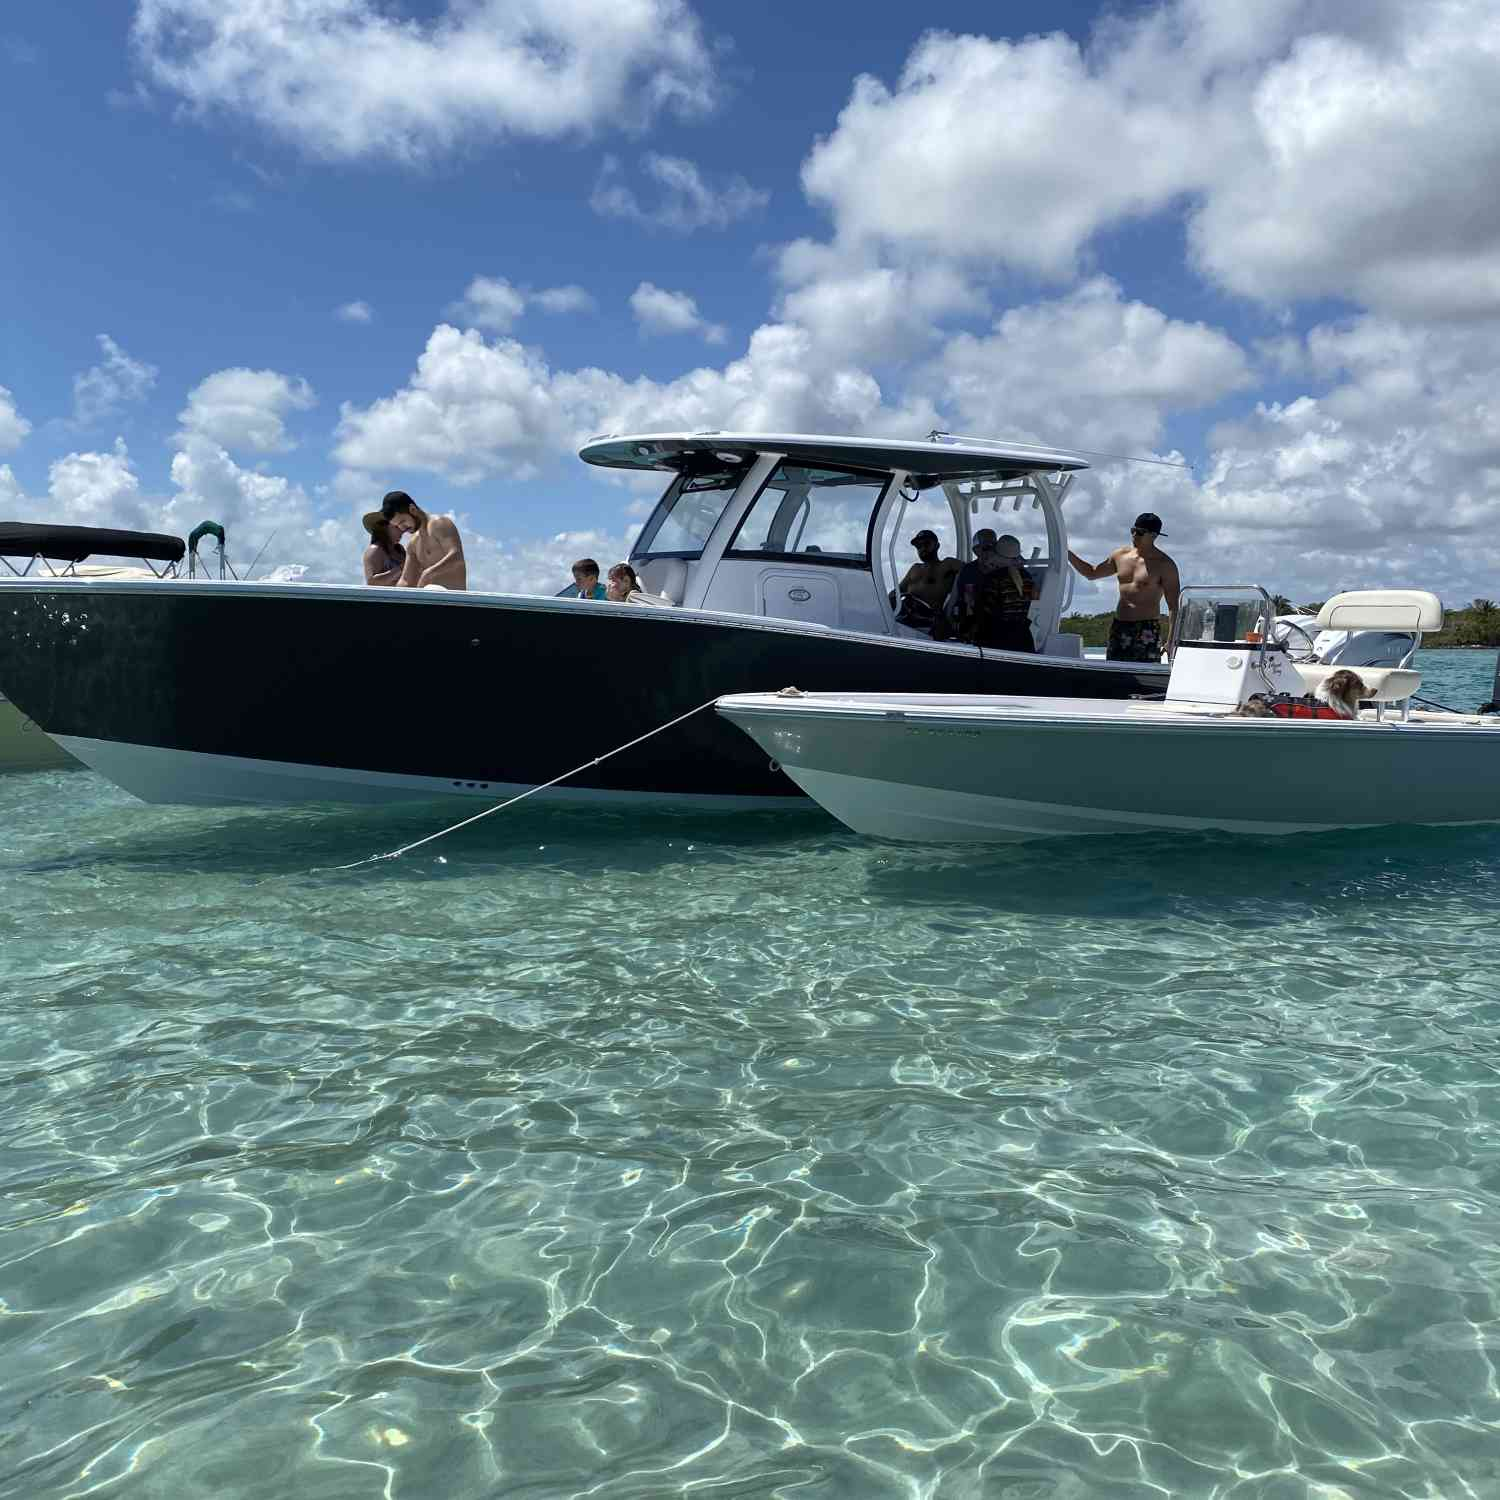 Title: Haulover Sandbar - On board their Sportsman Island Bay 20 Bay Boat - Location: Miami, FL. Participating in the Photo Contest #SportsmanMay2020